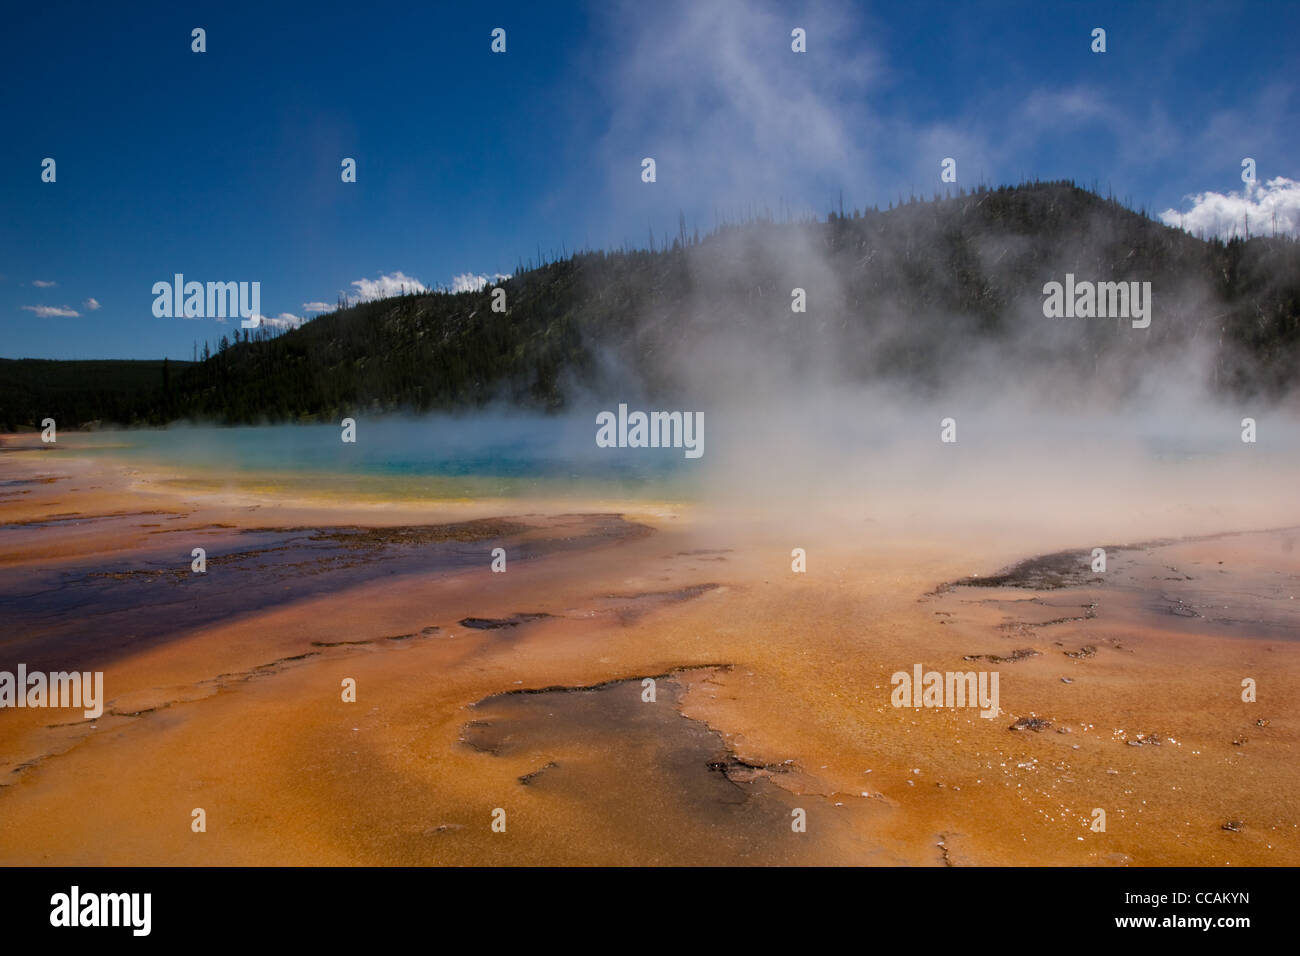 The Prismatic Spring located in Yellowstone National Park. - Stock Image